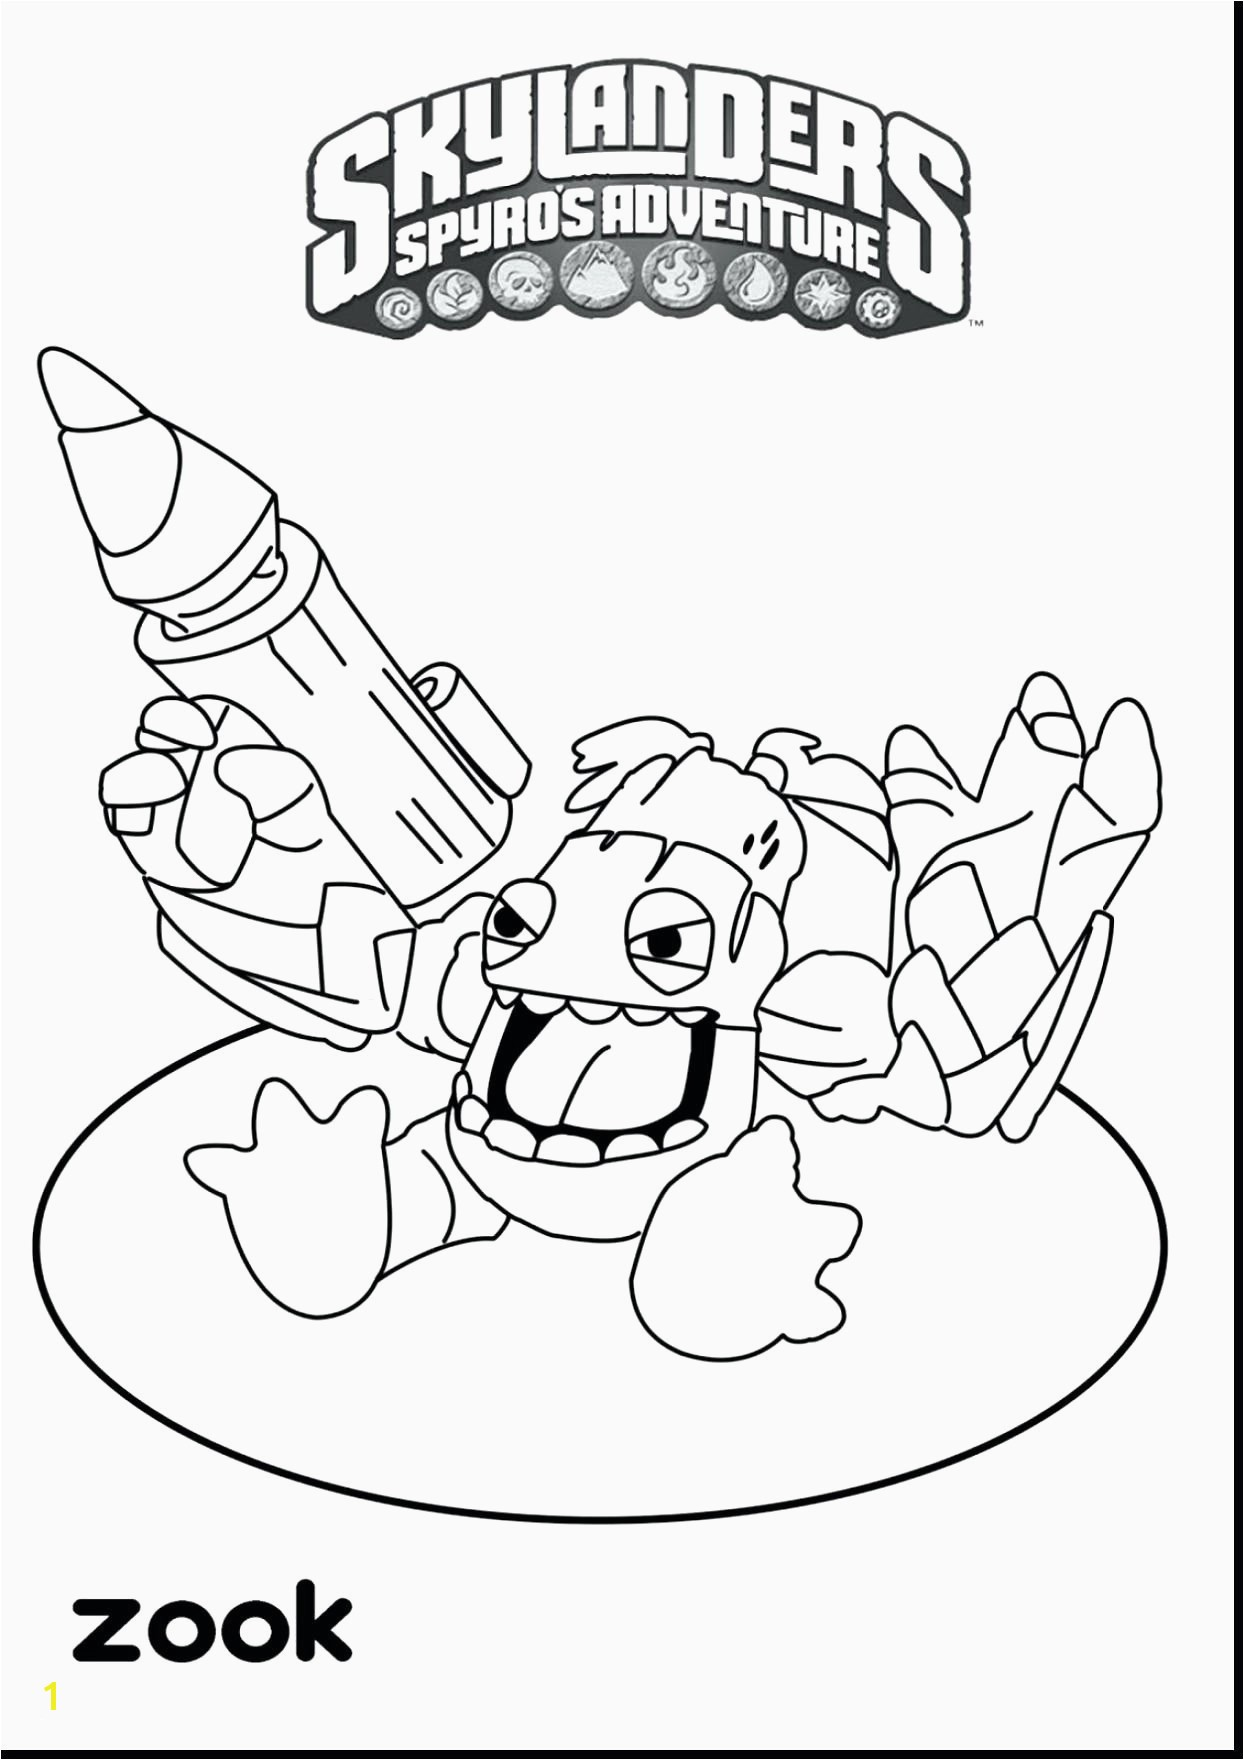 Bugs Bunny Coloring Pages Elegant Print Coloring Page Heathermarxgallery Bugs Bunny Coloring Pages Awesome Coloring